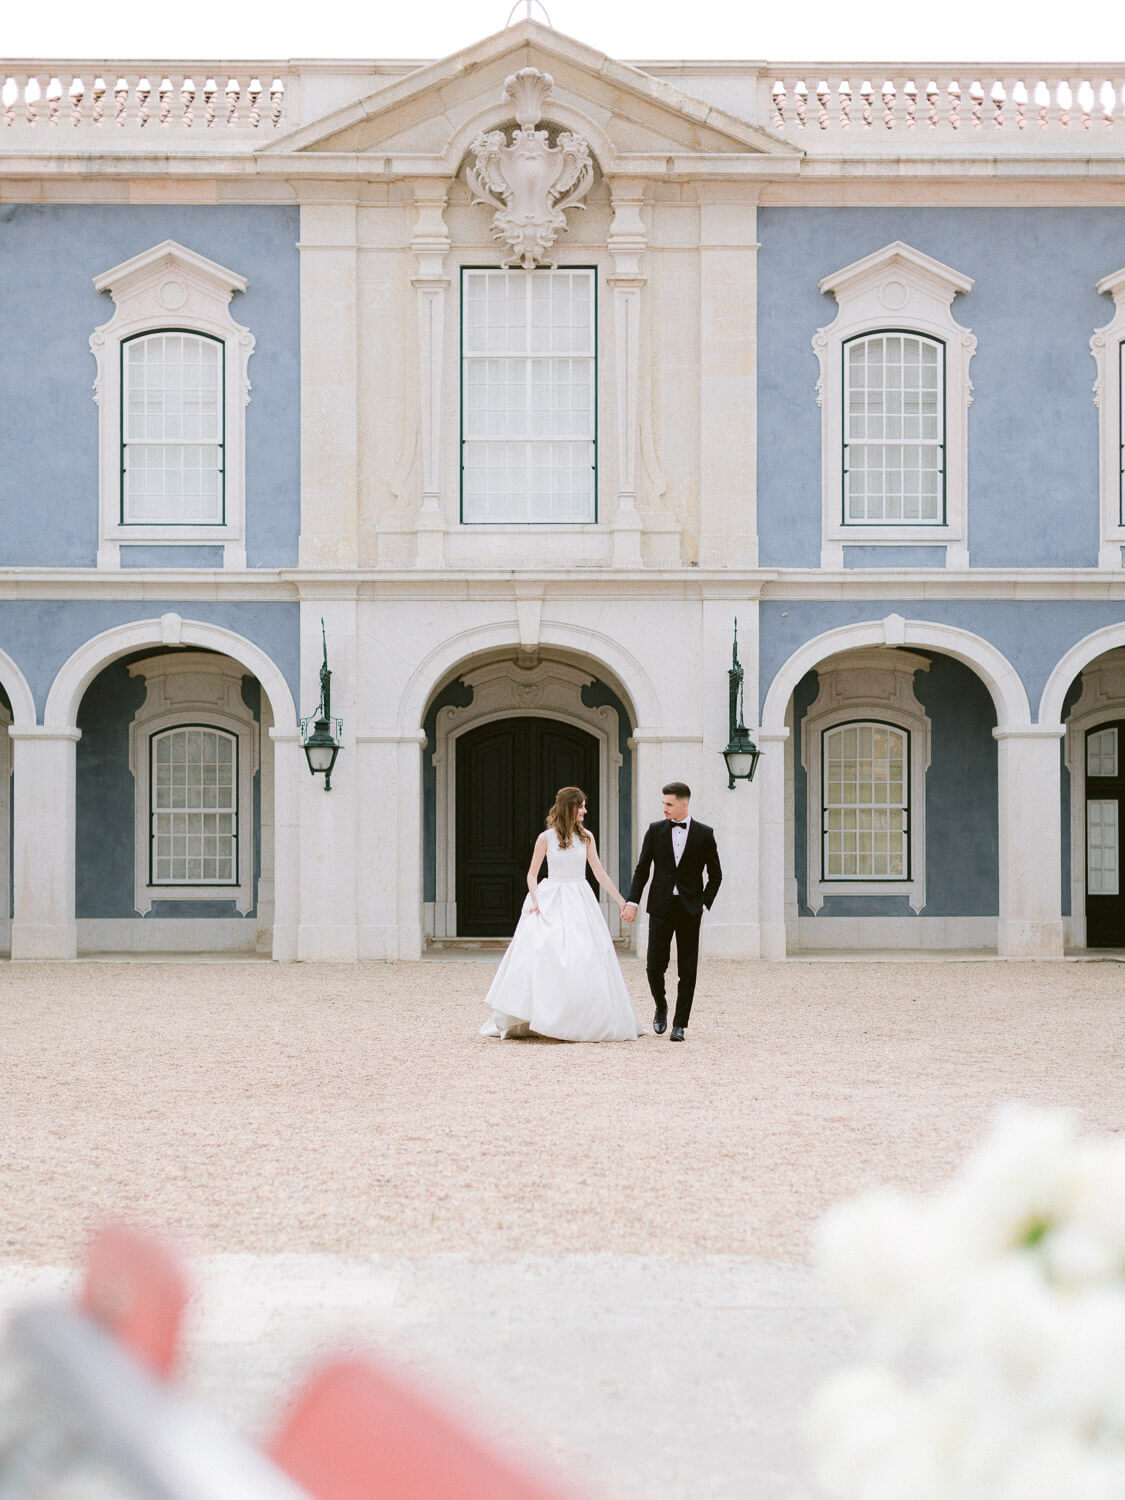 Gorgeous bride and groom portrait walking in front of beautiful Palacio de Queluz by Portugal Wedding Photographer